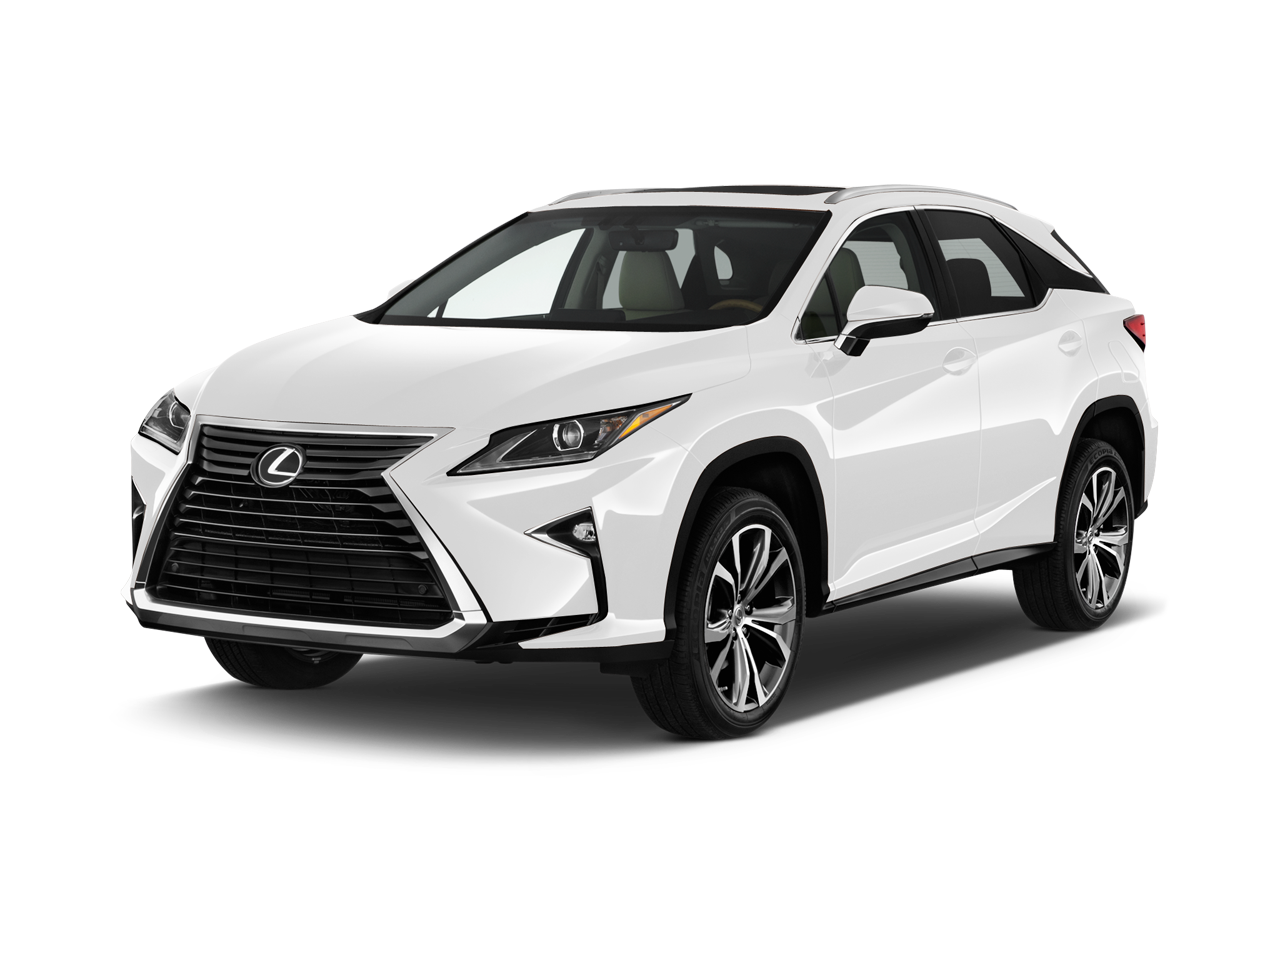 new 2017 lexus rx 350 near chantilly va pohanka lexus. Black Bedroom Furniture Sets. Home Design Ideas